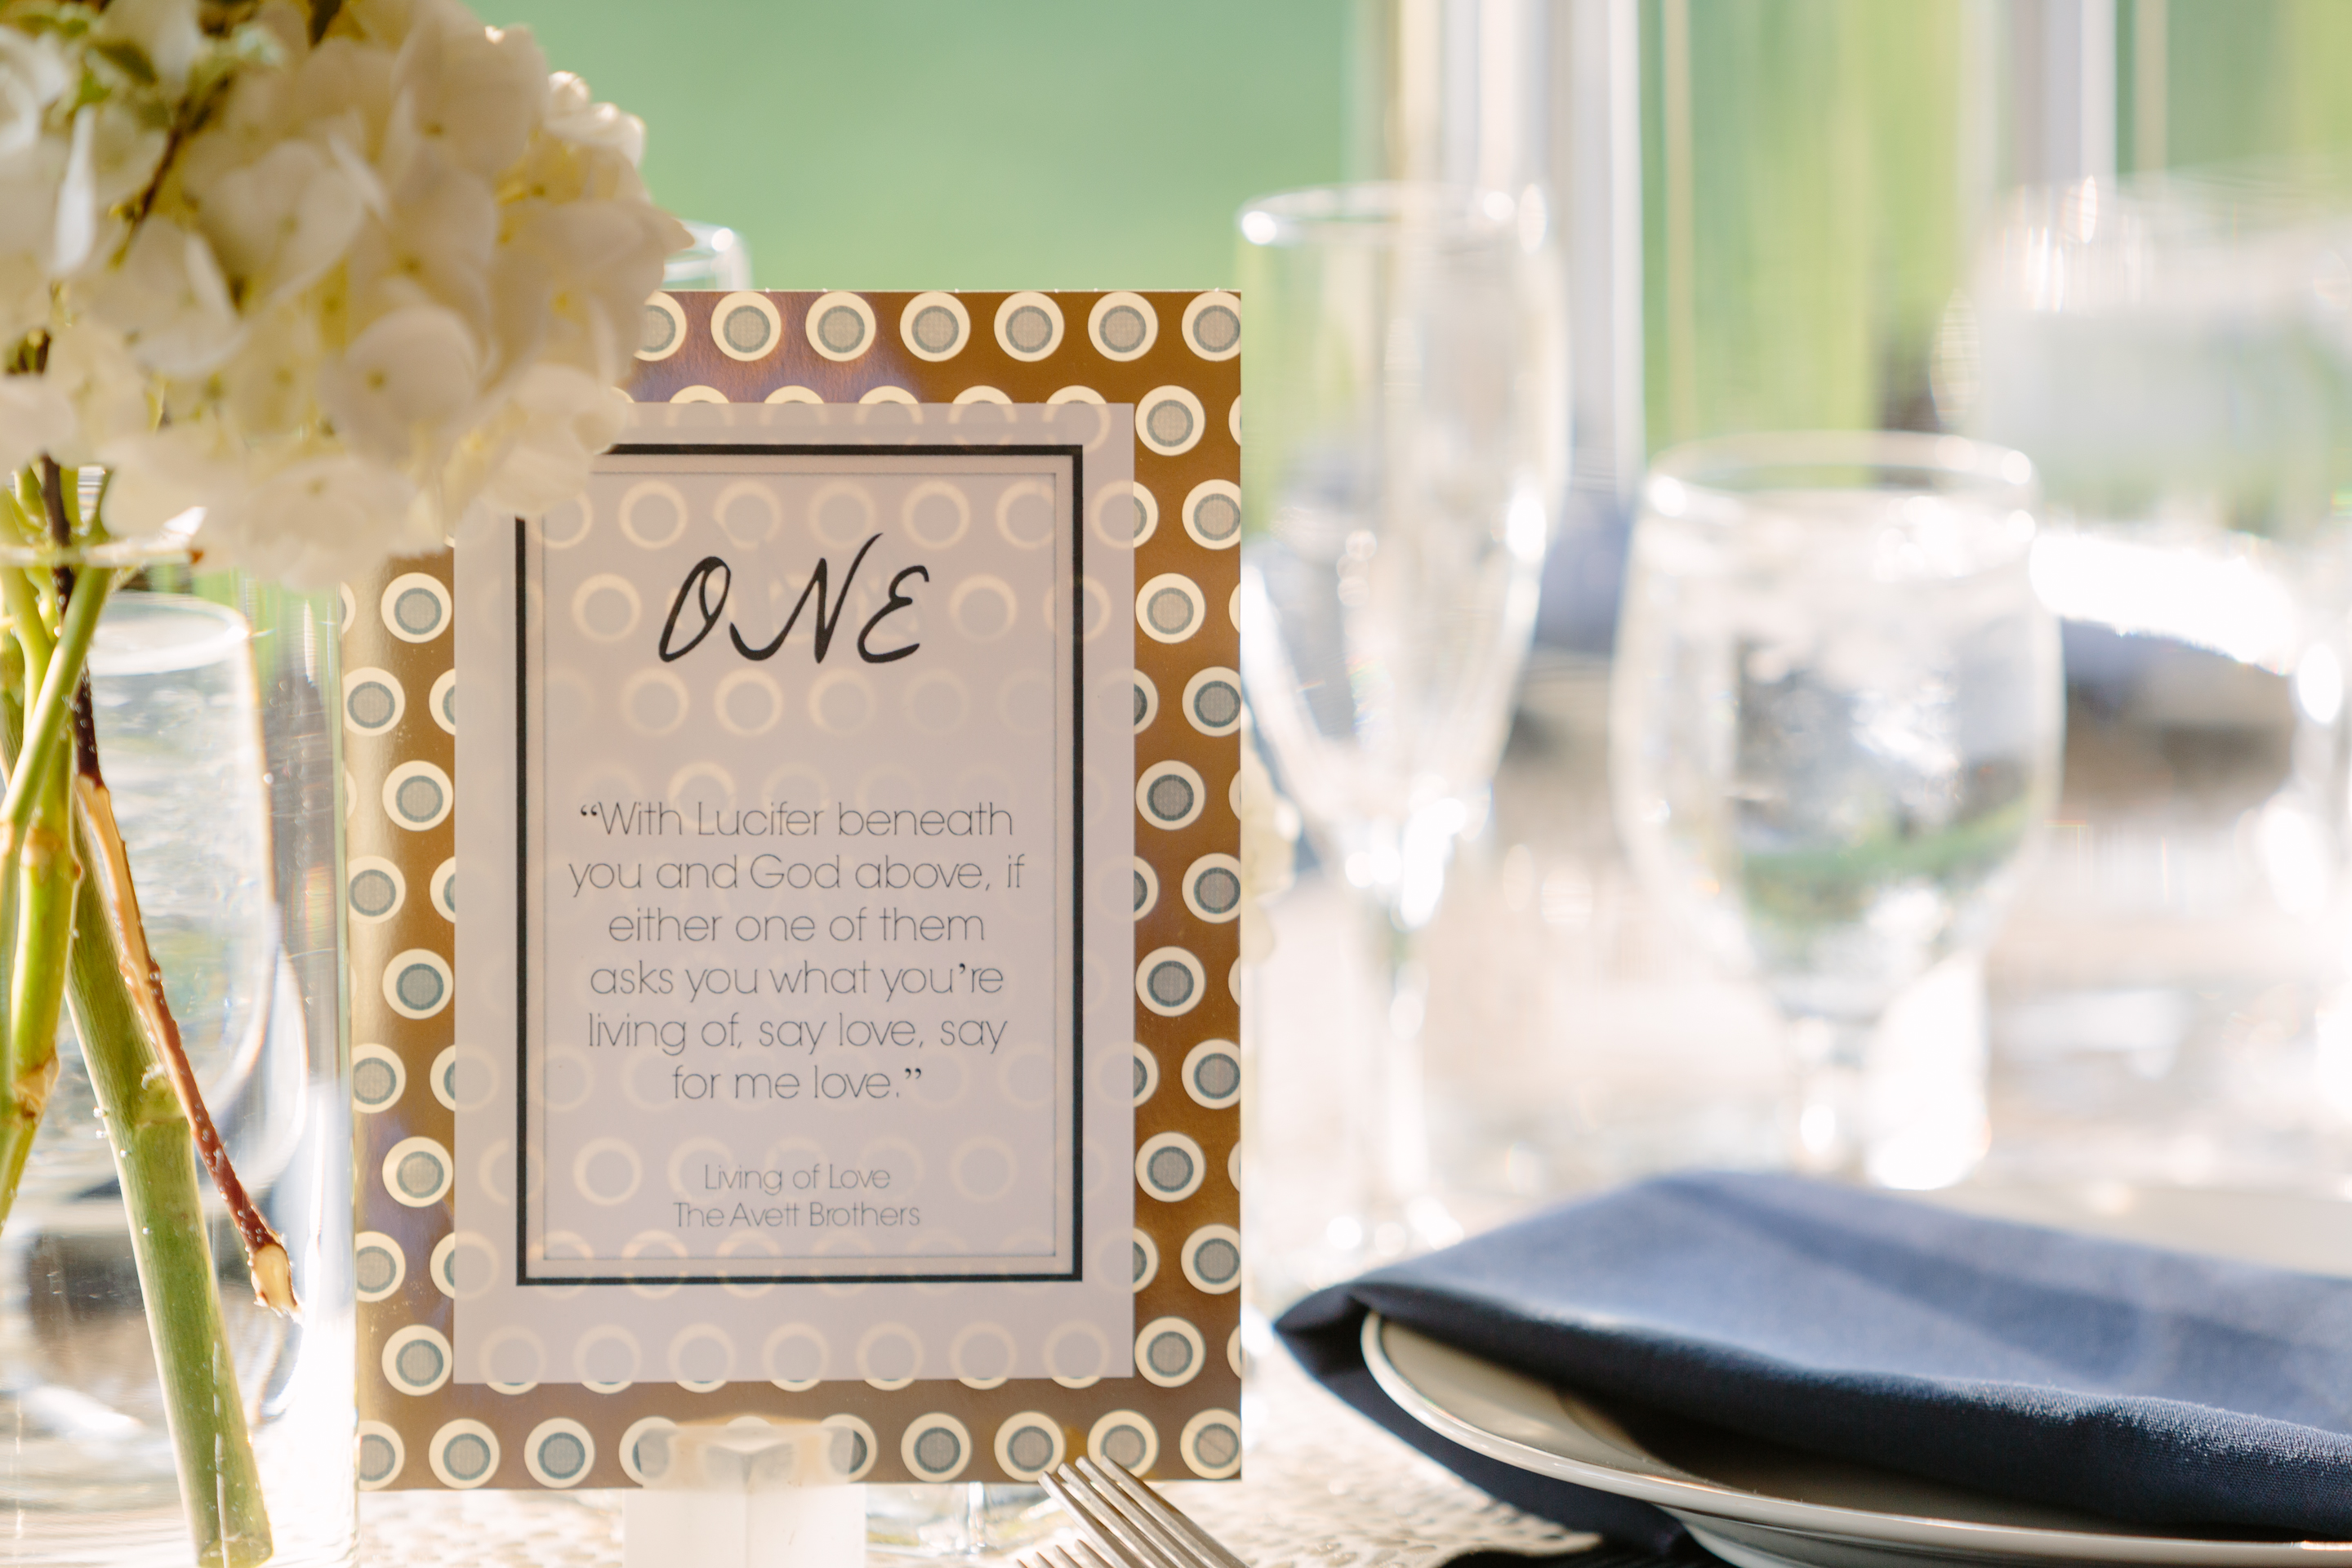 custom made table numbers with avett brothers song titles quotes white hydrangea and navy linen napkins